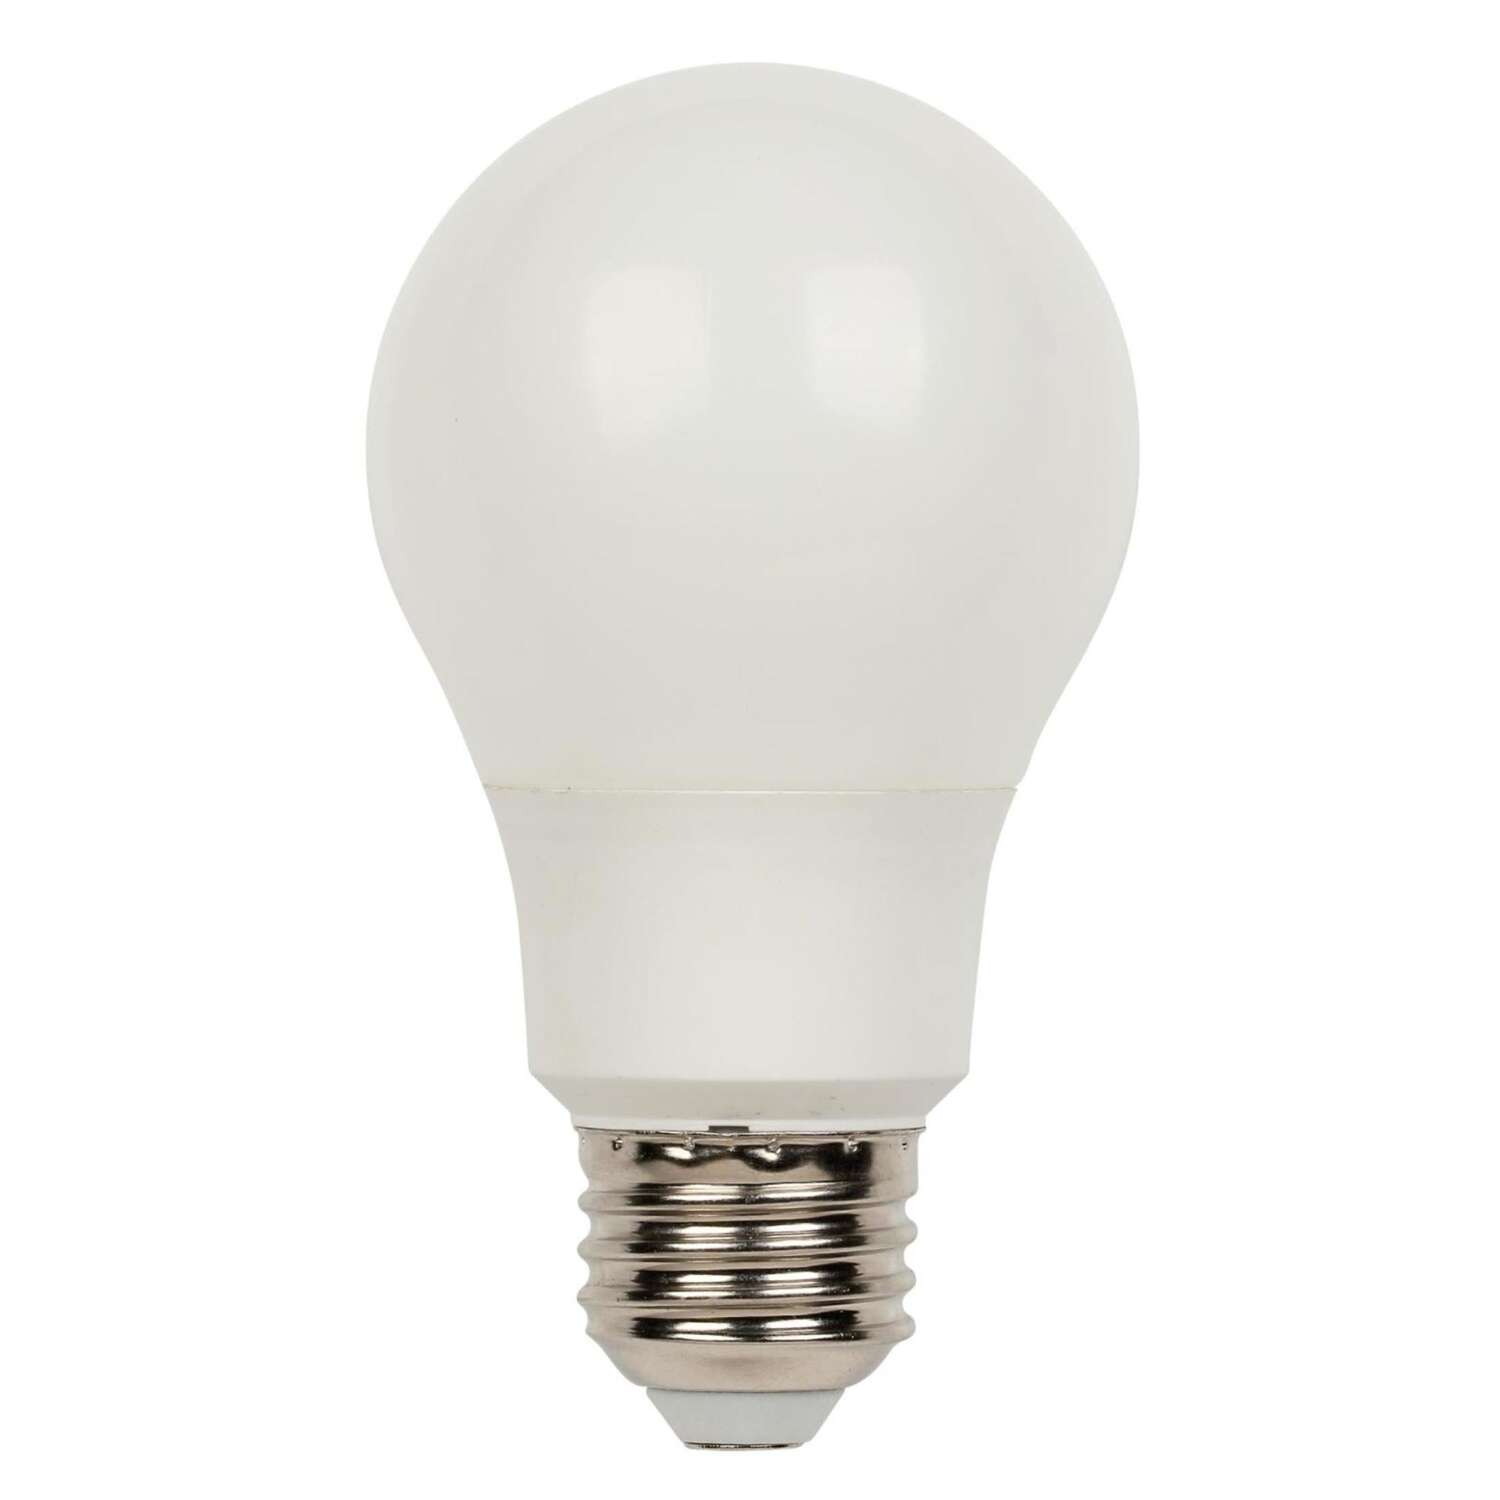 Westinghouse A19 E26 (Medium) LED Bulb Warm White 40 Watt Equivalence 1 pk